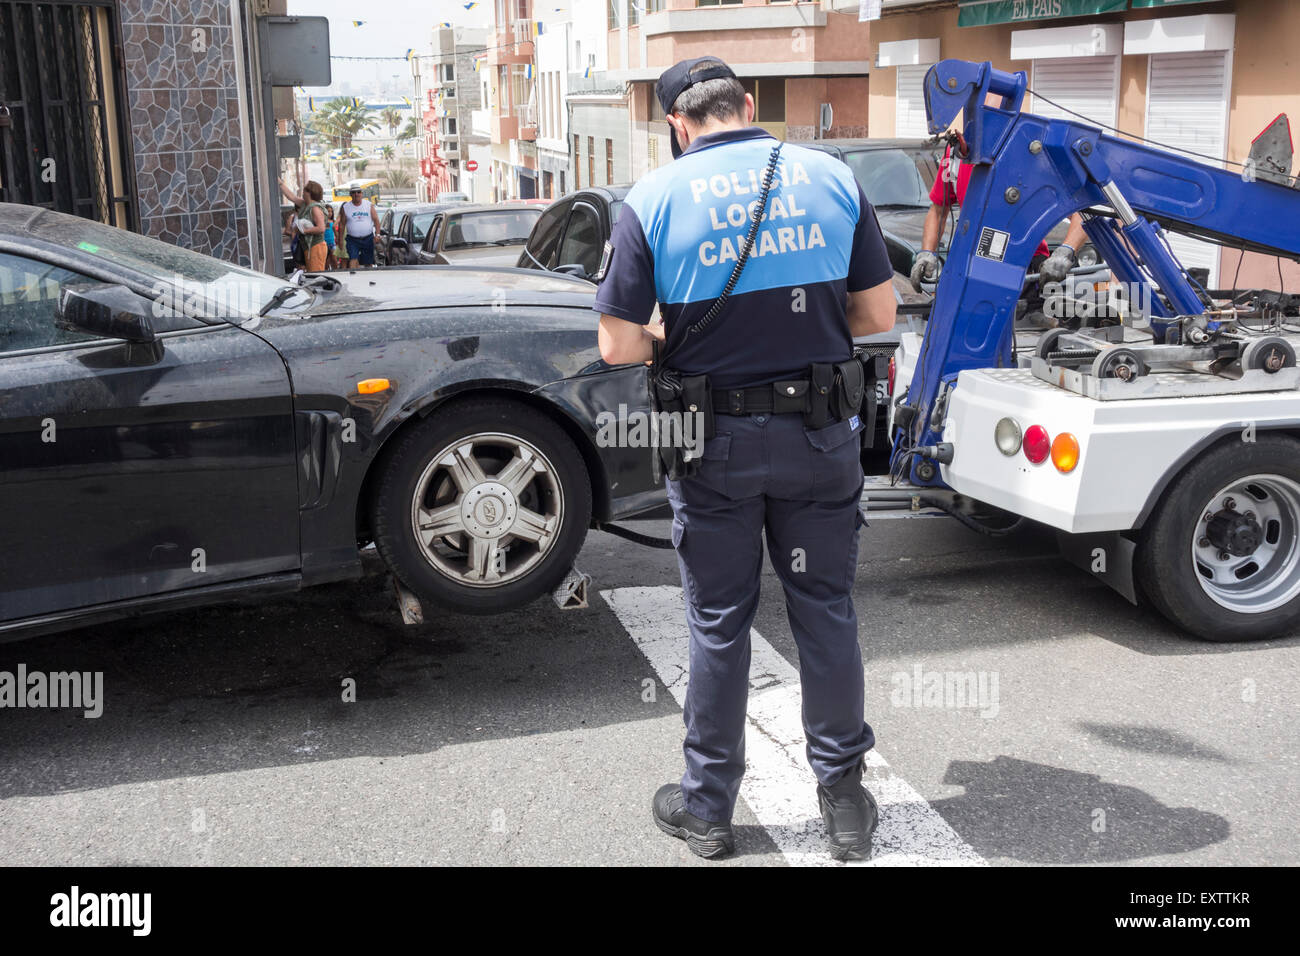 illegally parked car being towed away by Police in Canary Islands - Stock Image